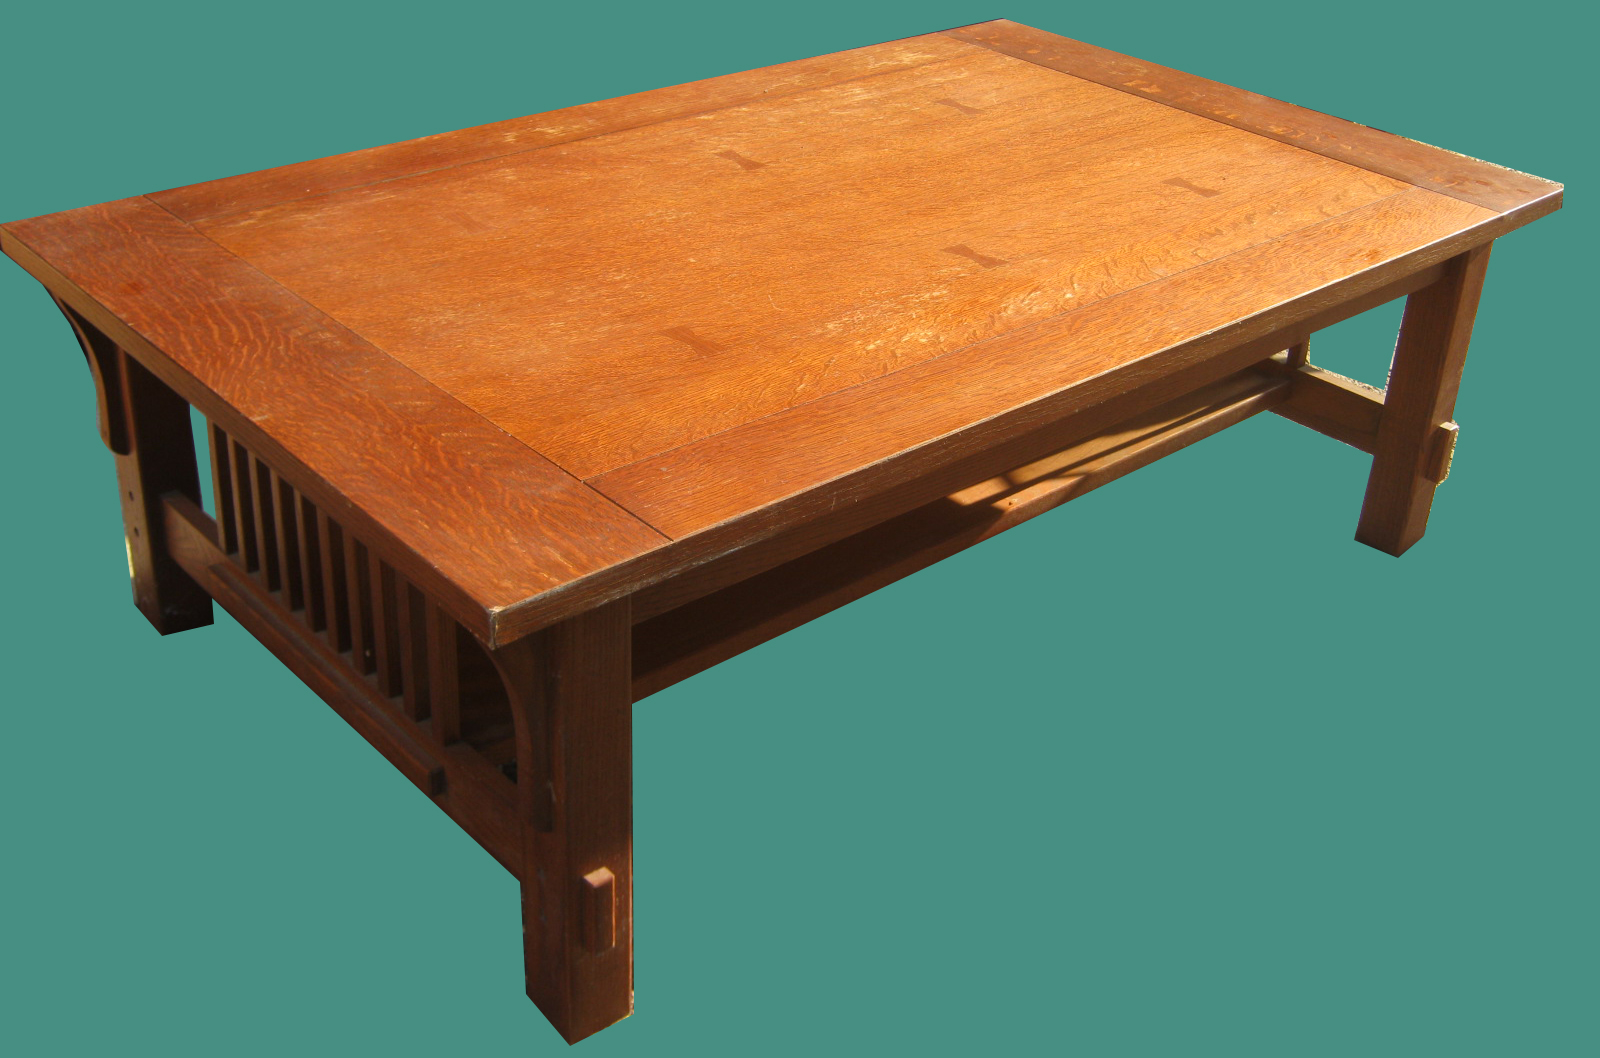 Uhuru Furniture Collectibles Mission Style Coffee Table Sold